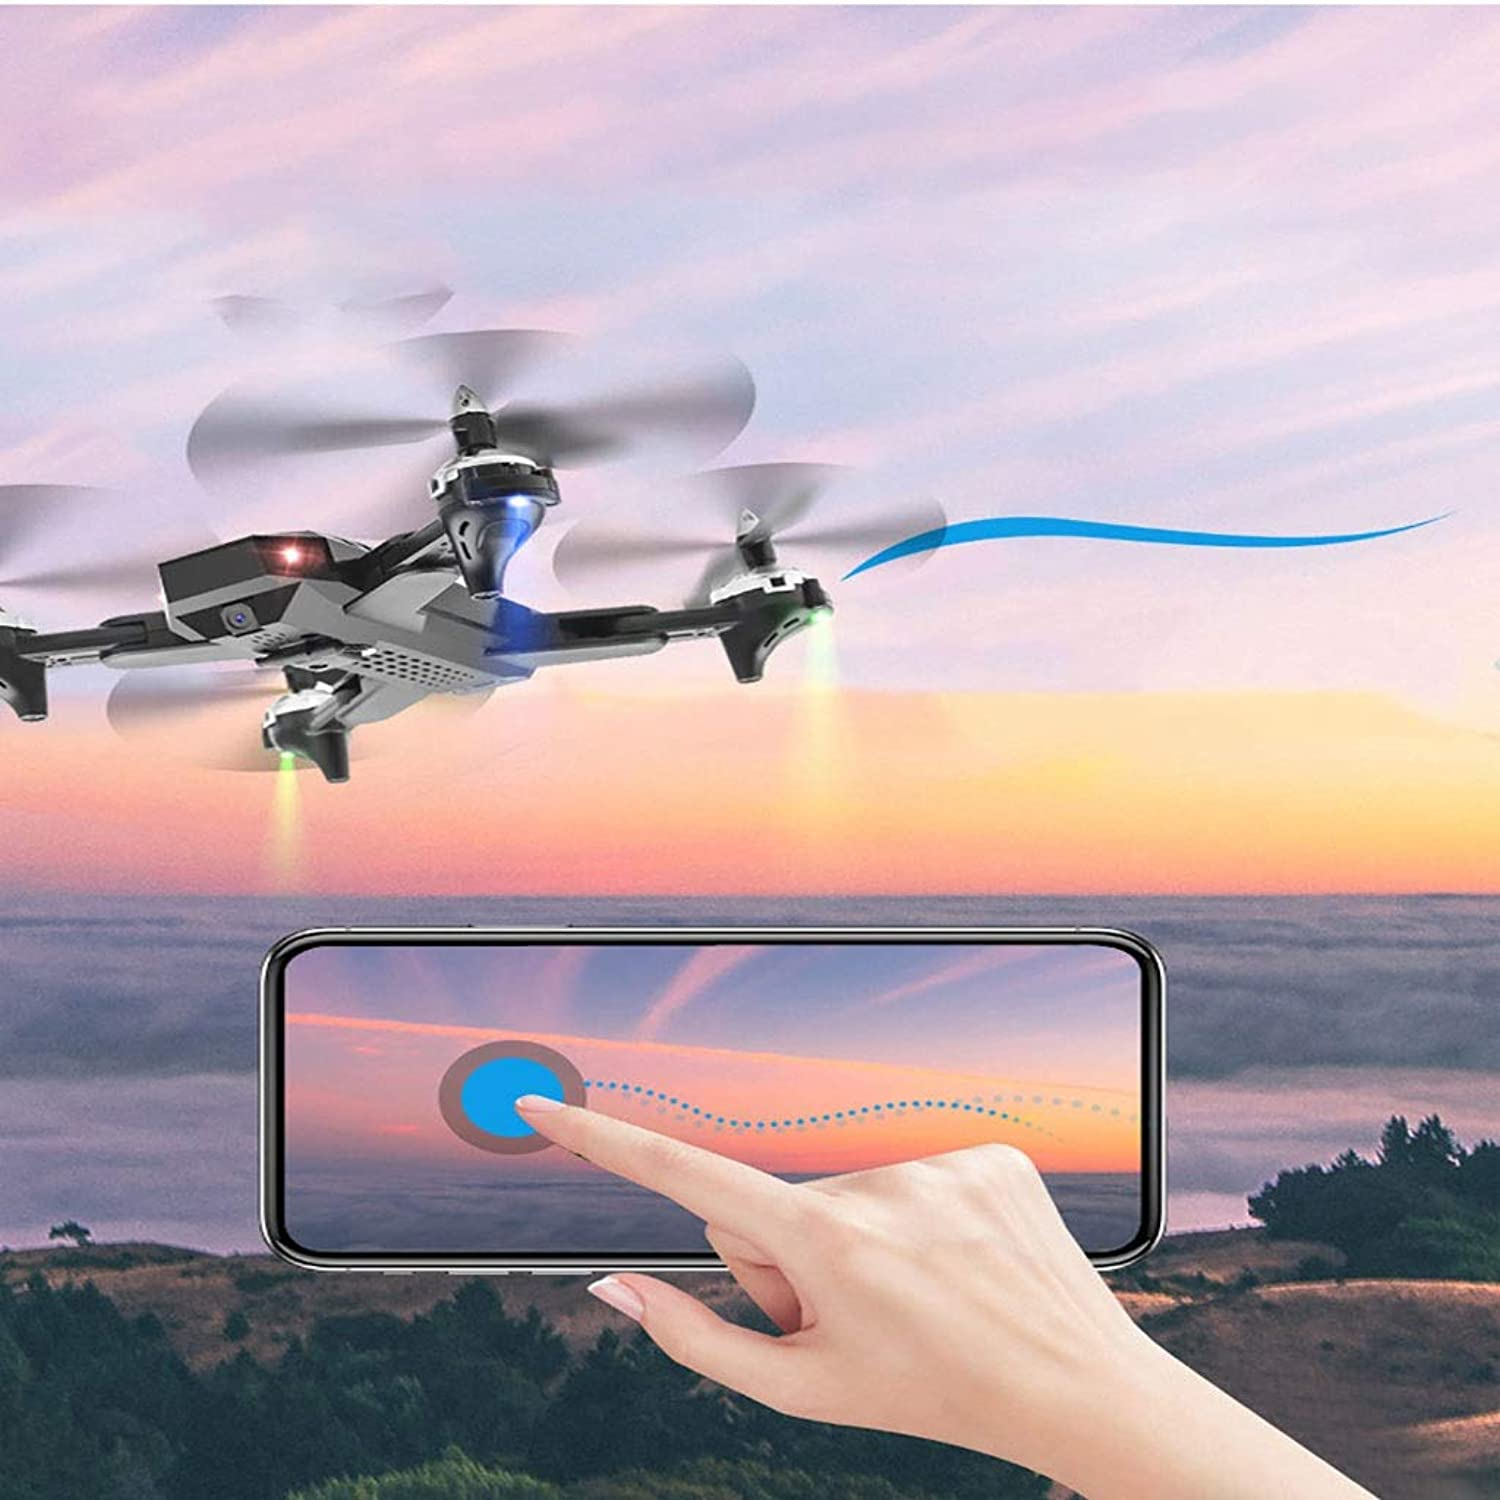 NuoEn Mini UAV Drone HD Aerial Photography Long Time Quadcopter Aircraft For Kids and Beginner Drone Toy White Or Black ( Design   White3MP )